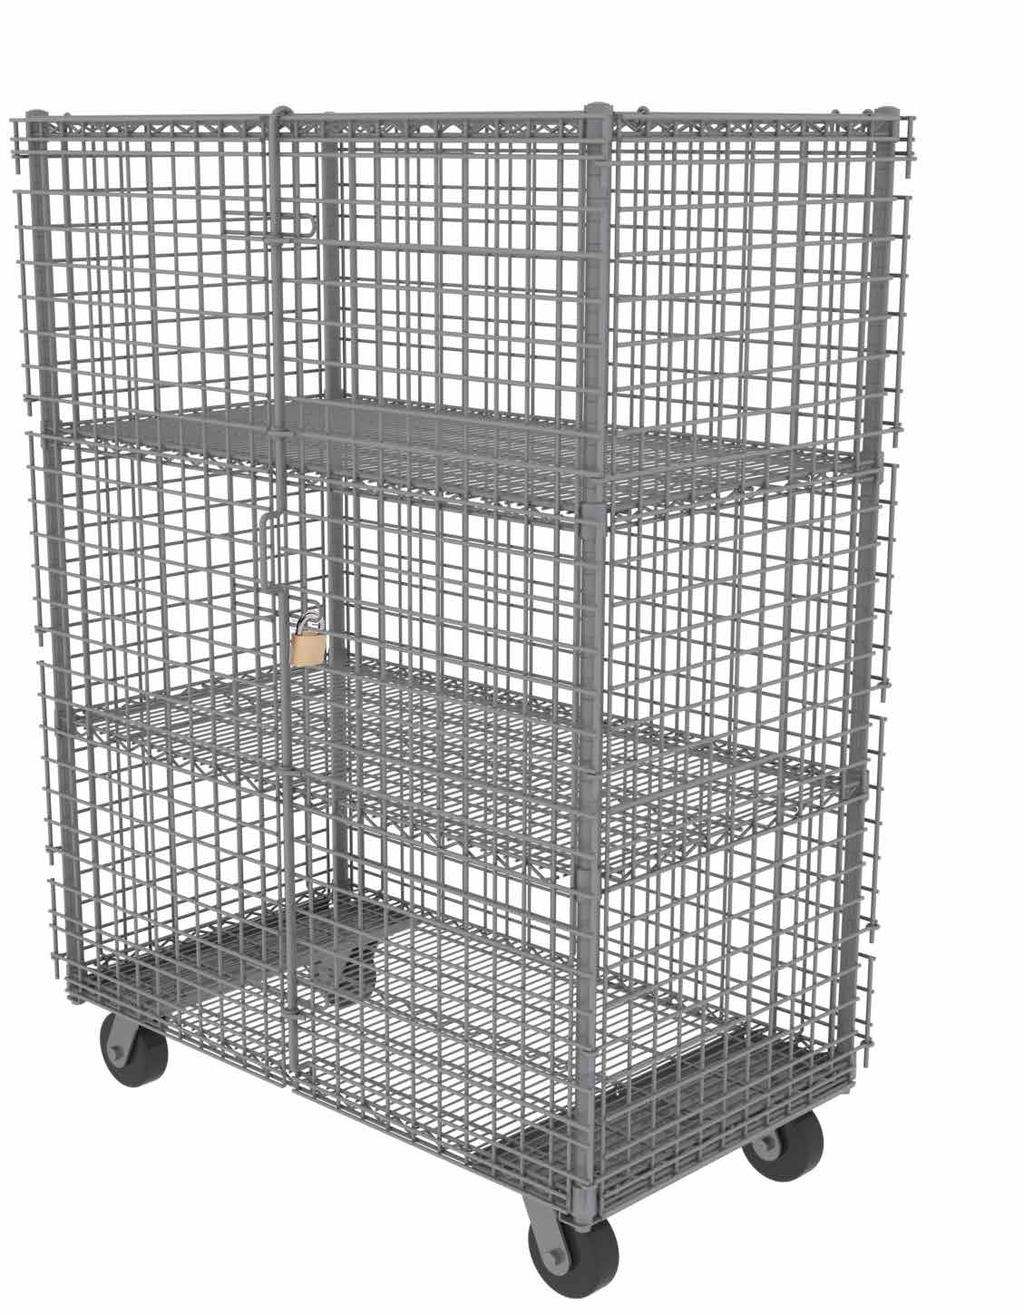 MOBILE SECURITY CAGES This cart allows you to sort and transport a wide range of products, all while keeping them secured and locked up